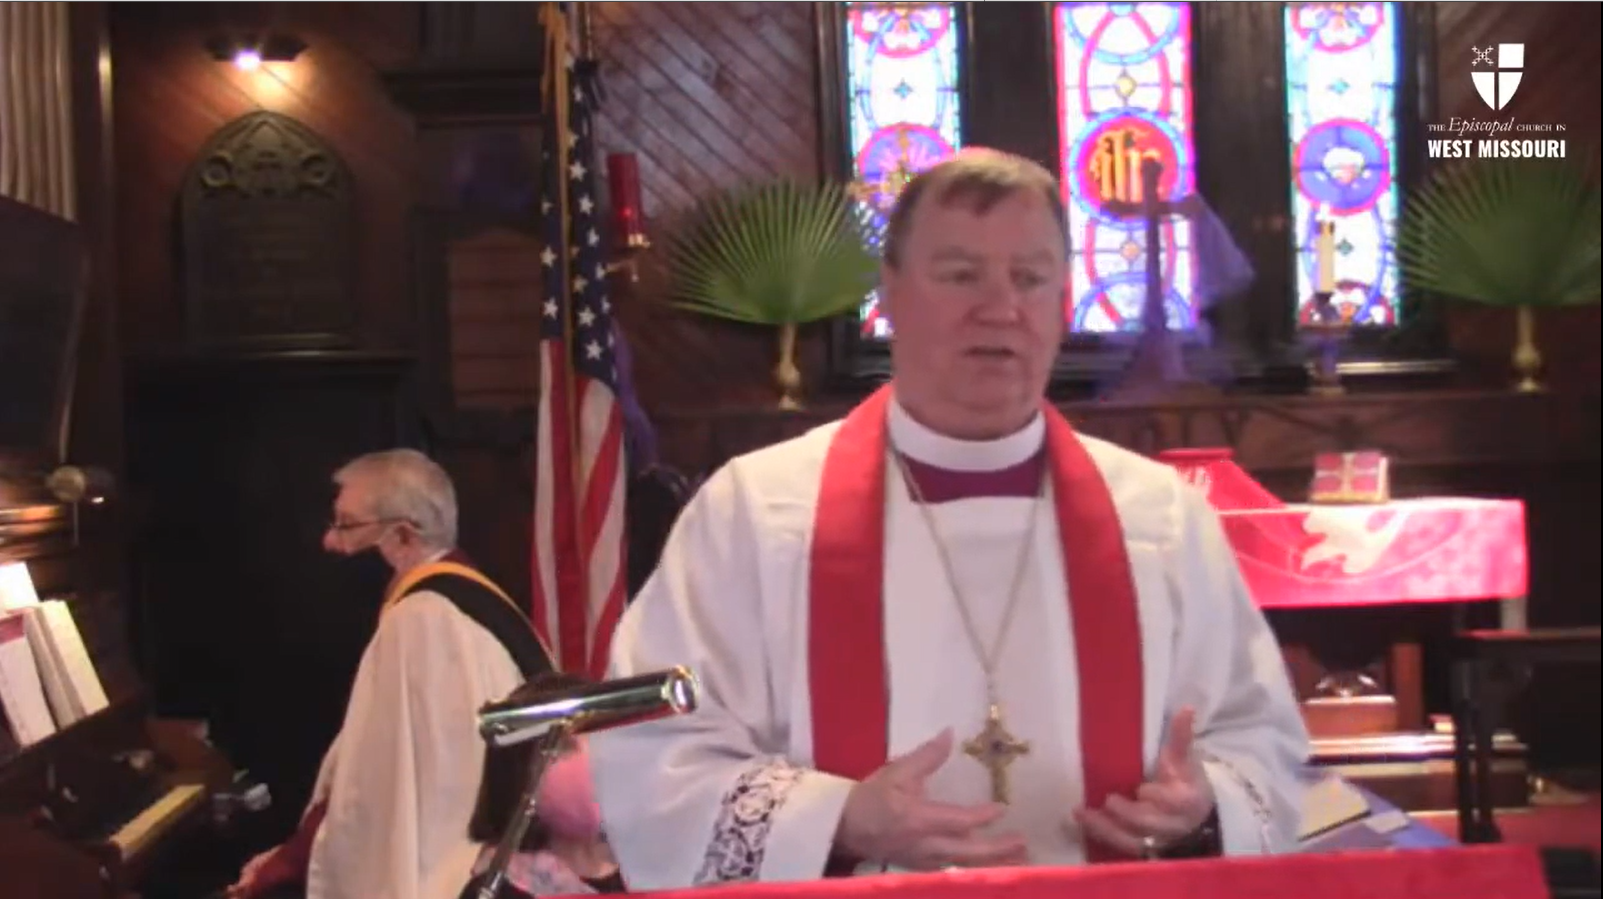 Bishop Marty's sermon at the Ordination of Michael Johns to the Sacred Order of Deacons